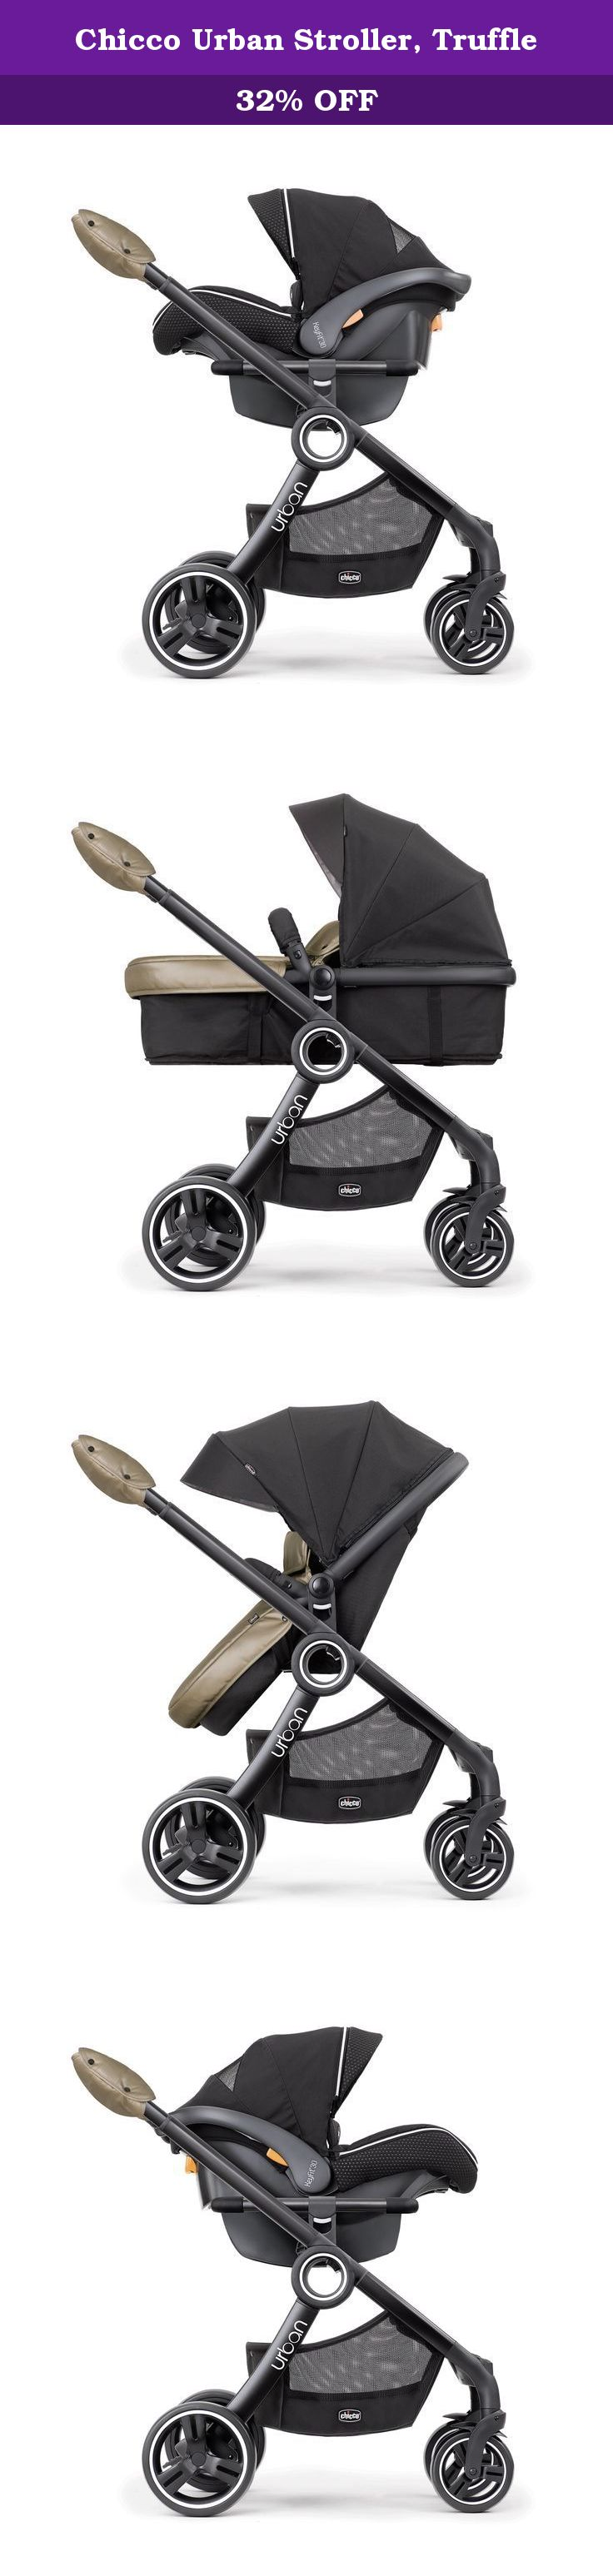 Chicco Urban Stroller, Truffle. The chicco urban is a